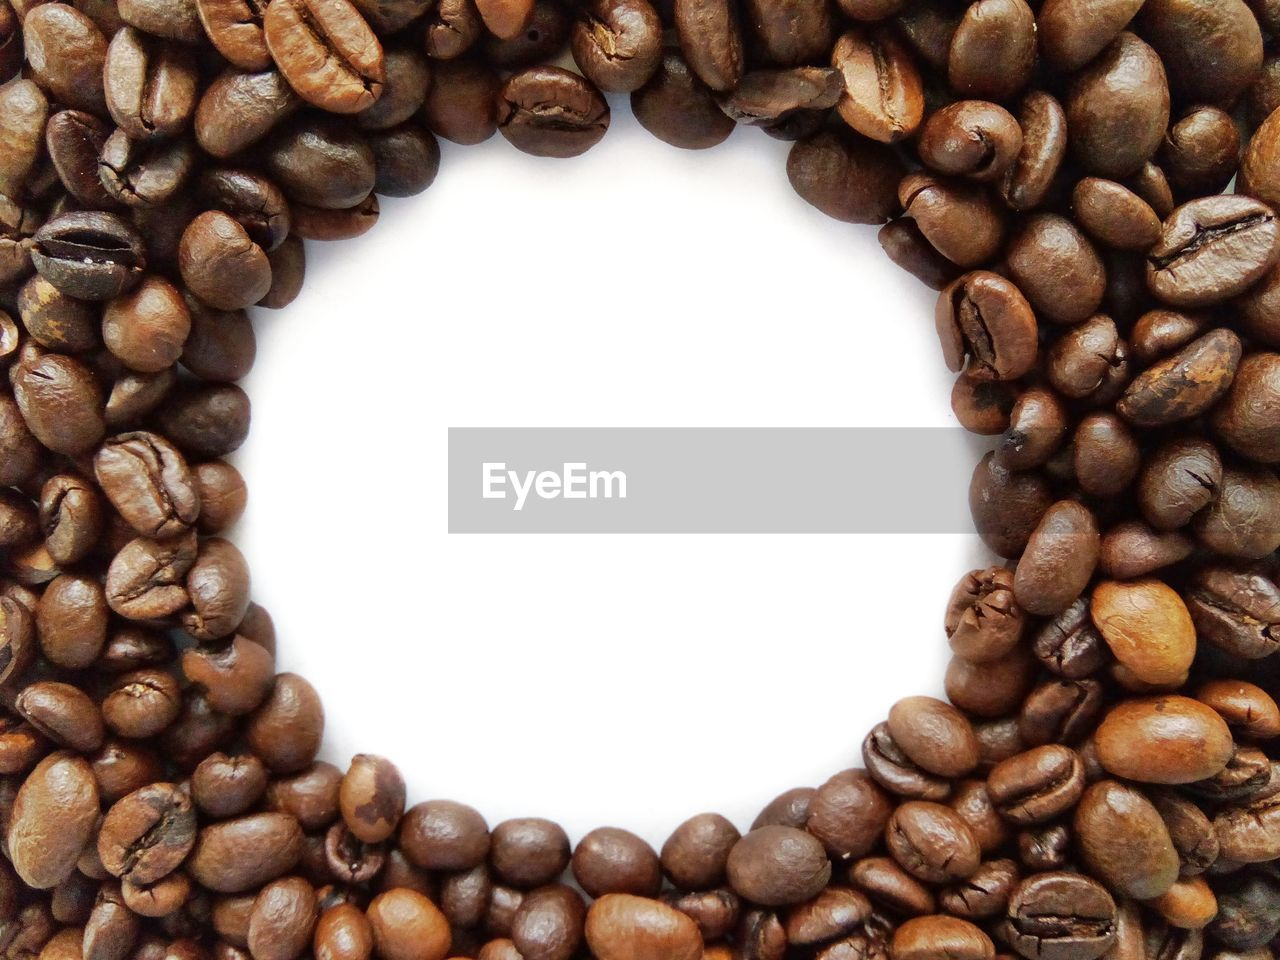 roasted coffee bean, coffee - drink, brown, coffee cup, food and drink, coffee bean, large group of objects, freshness, white background, no people, roasted, directly above, backgrounds, drink, refreshment, group of objects, studio shot, raw coffee bean, mocha, food, close-up, indoors, cappuccino